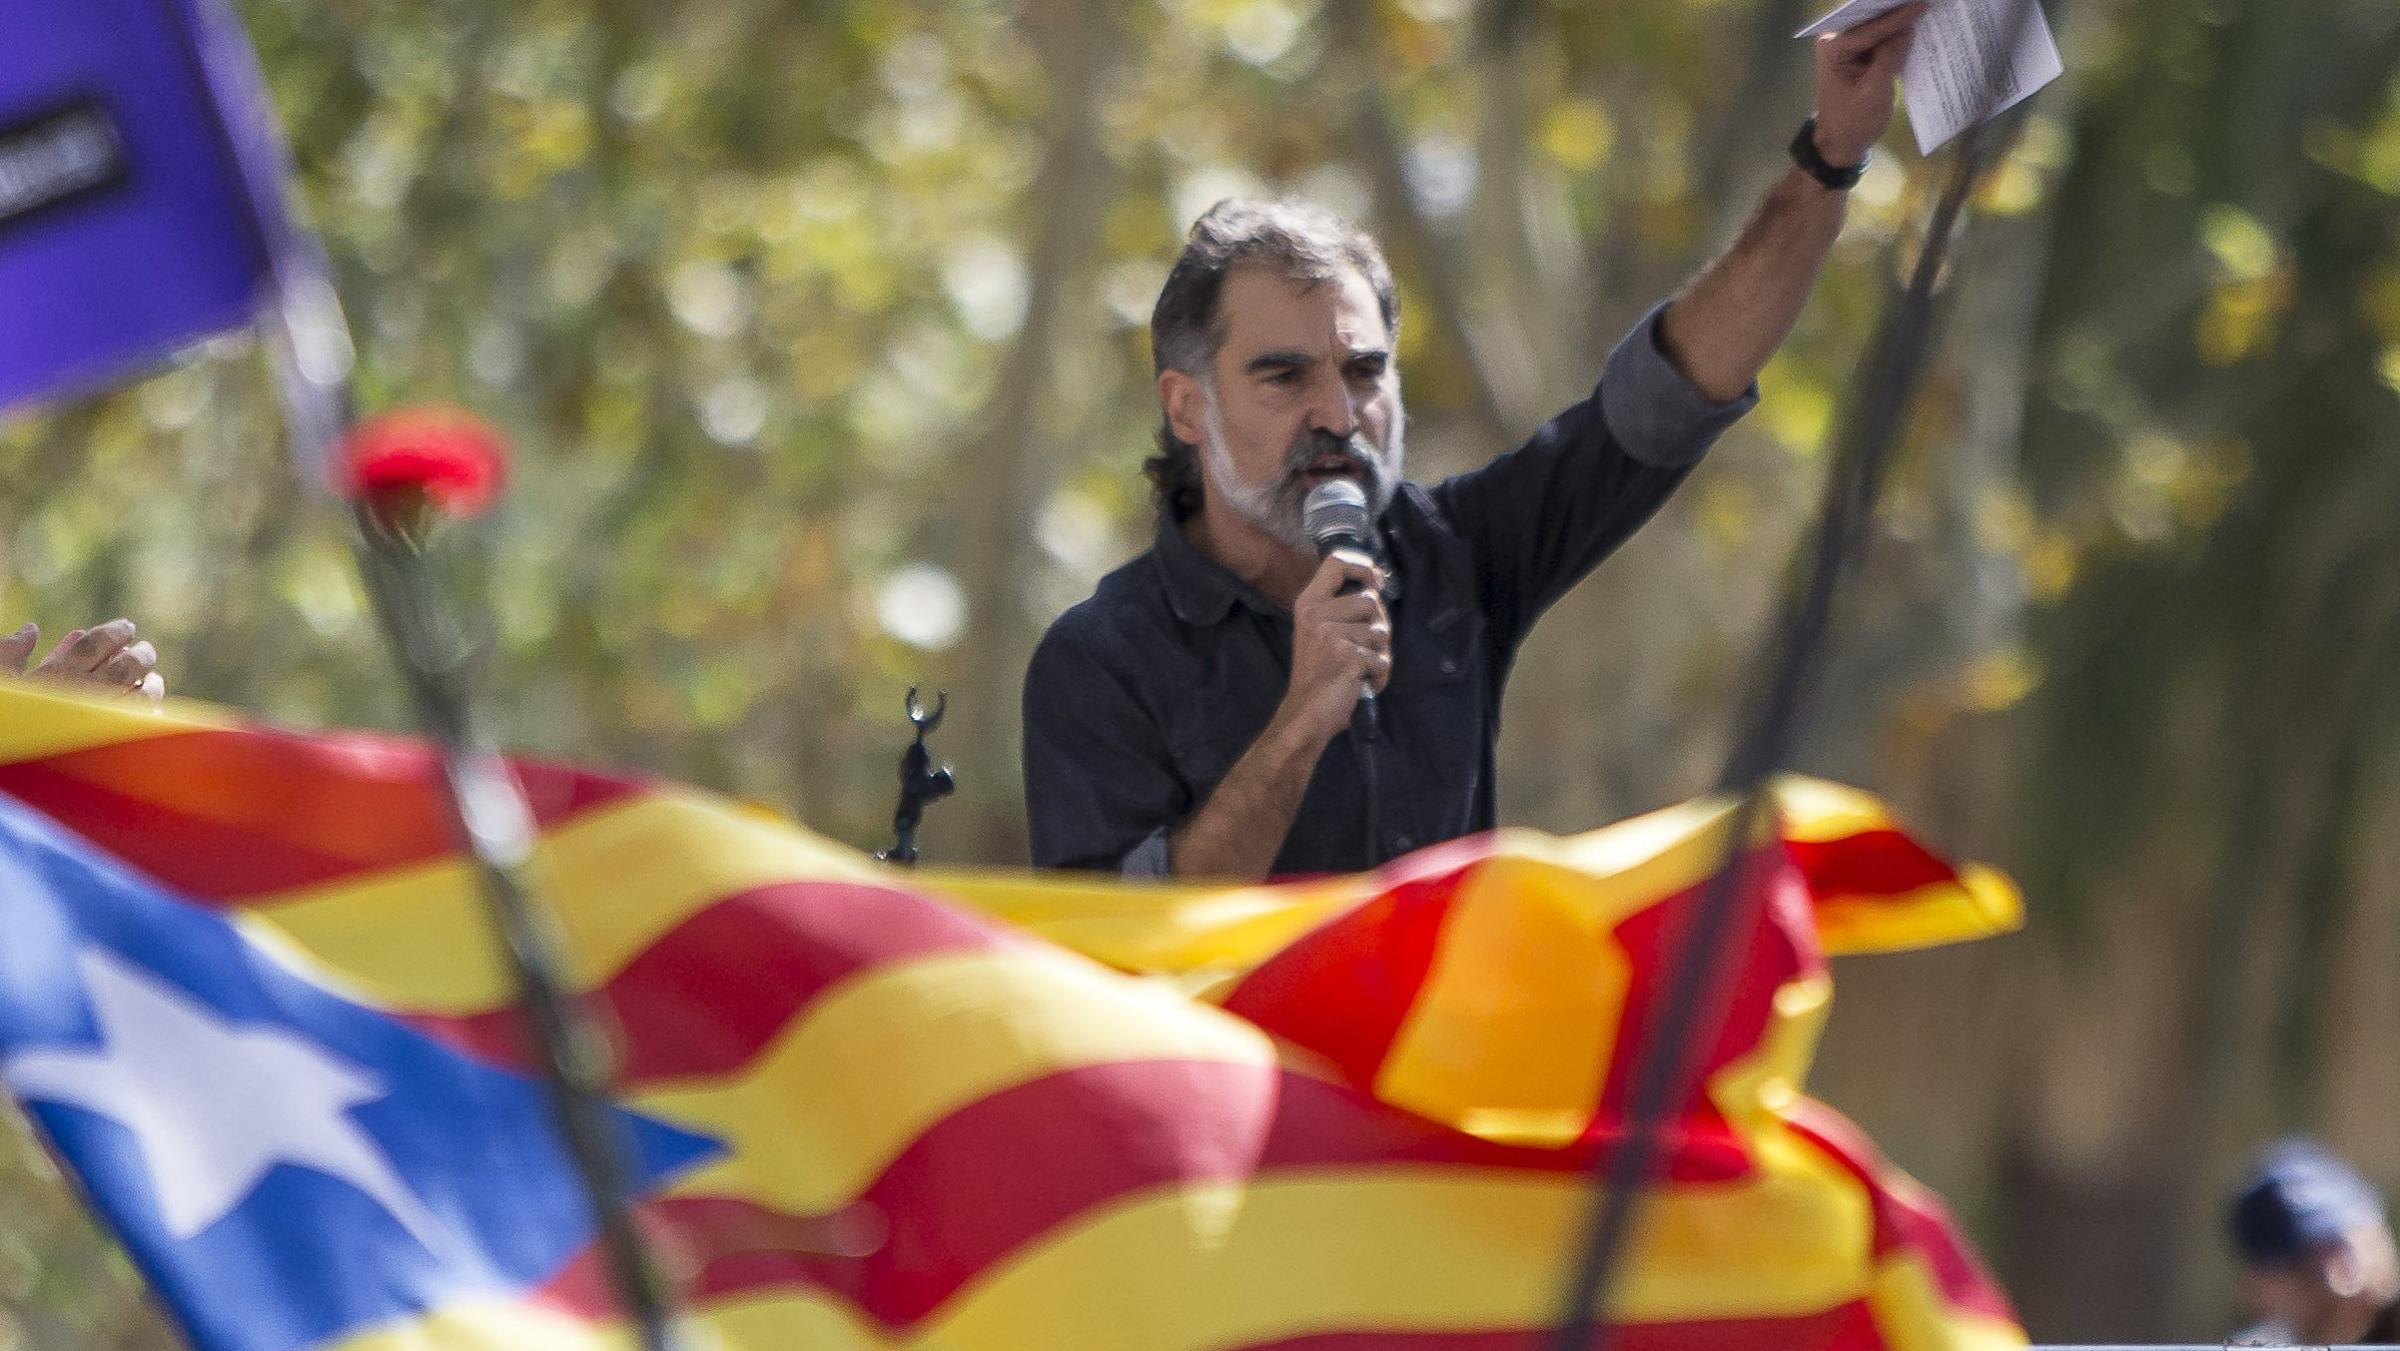 Jordi Cuixart only sees his 18-month-old son for a few hours per month